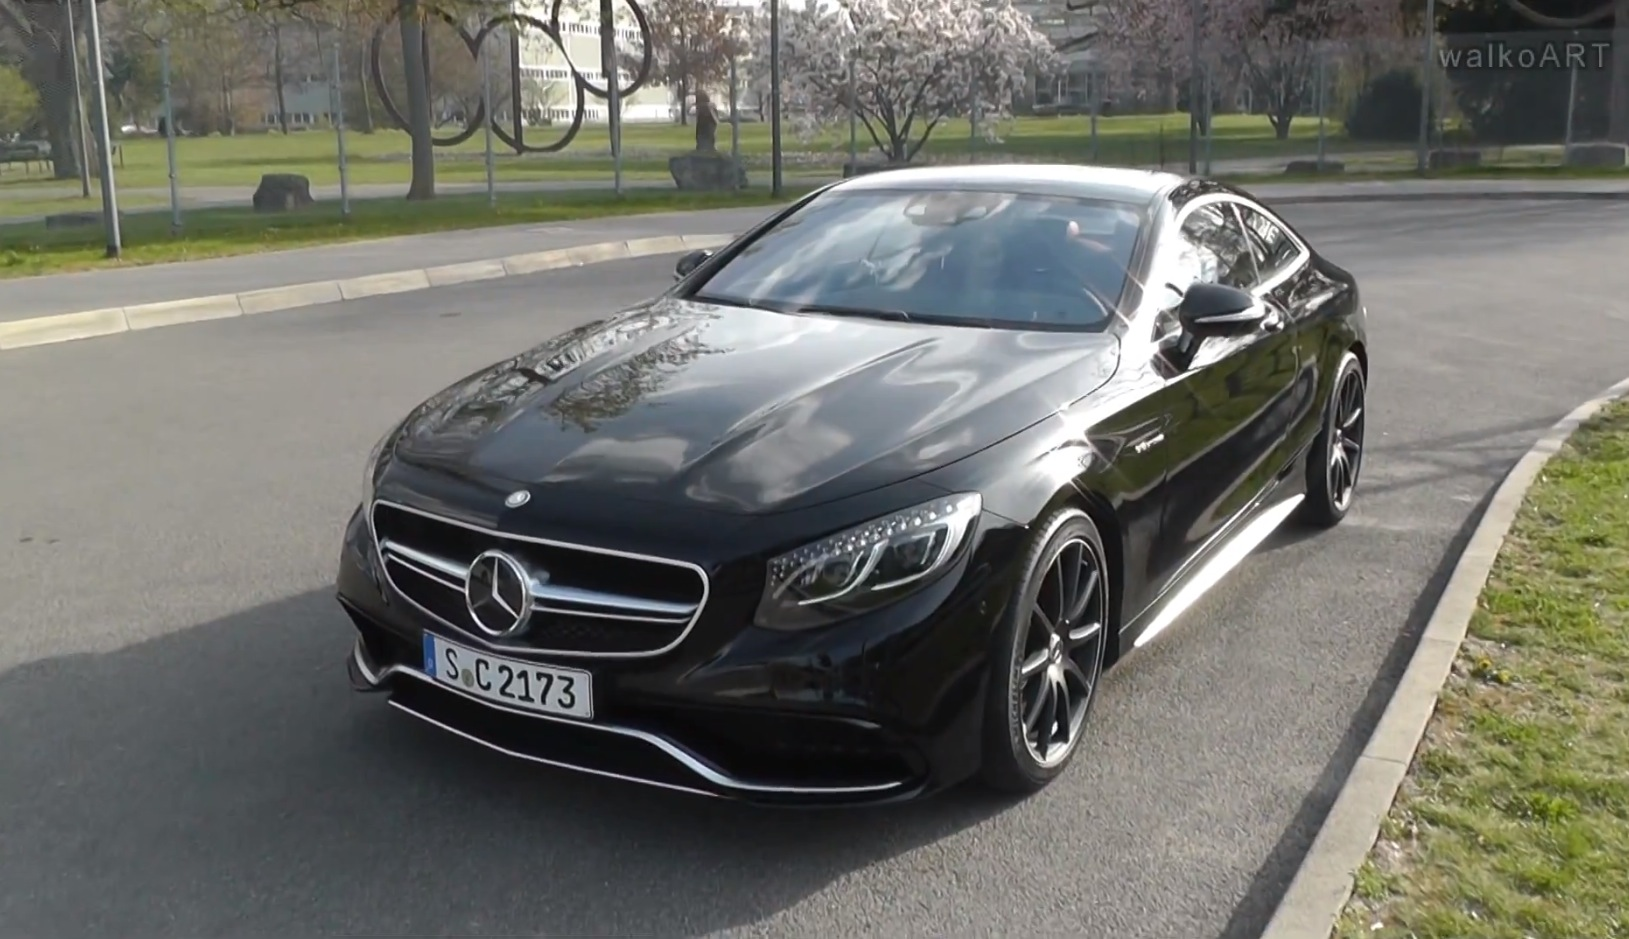 black s 63 amg coupe c217 spotted on the street video. Black Bedroom Furniture Sets. Home Design Ideas